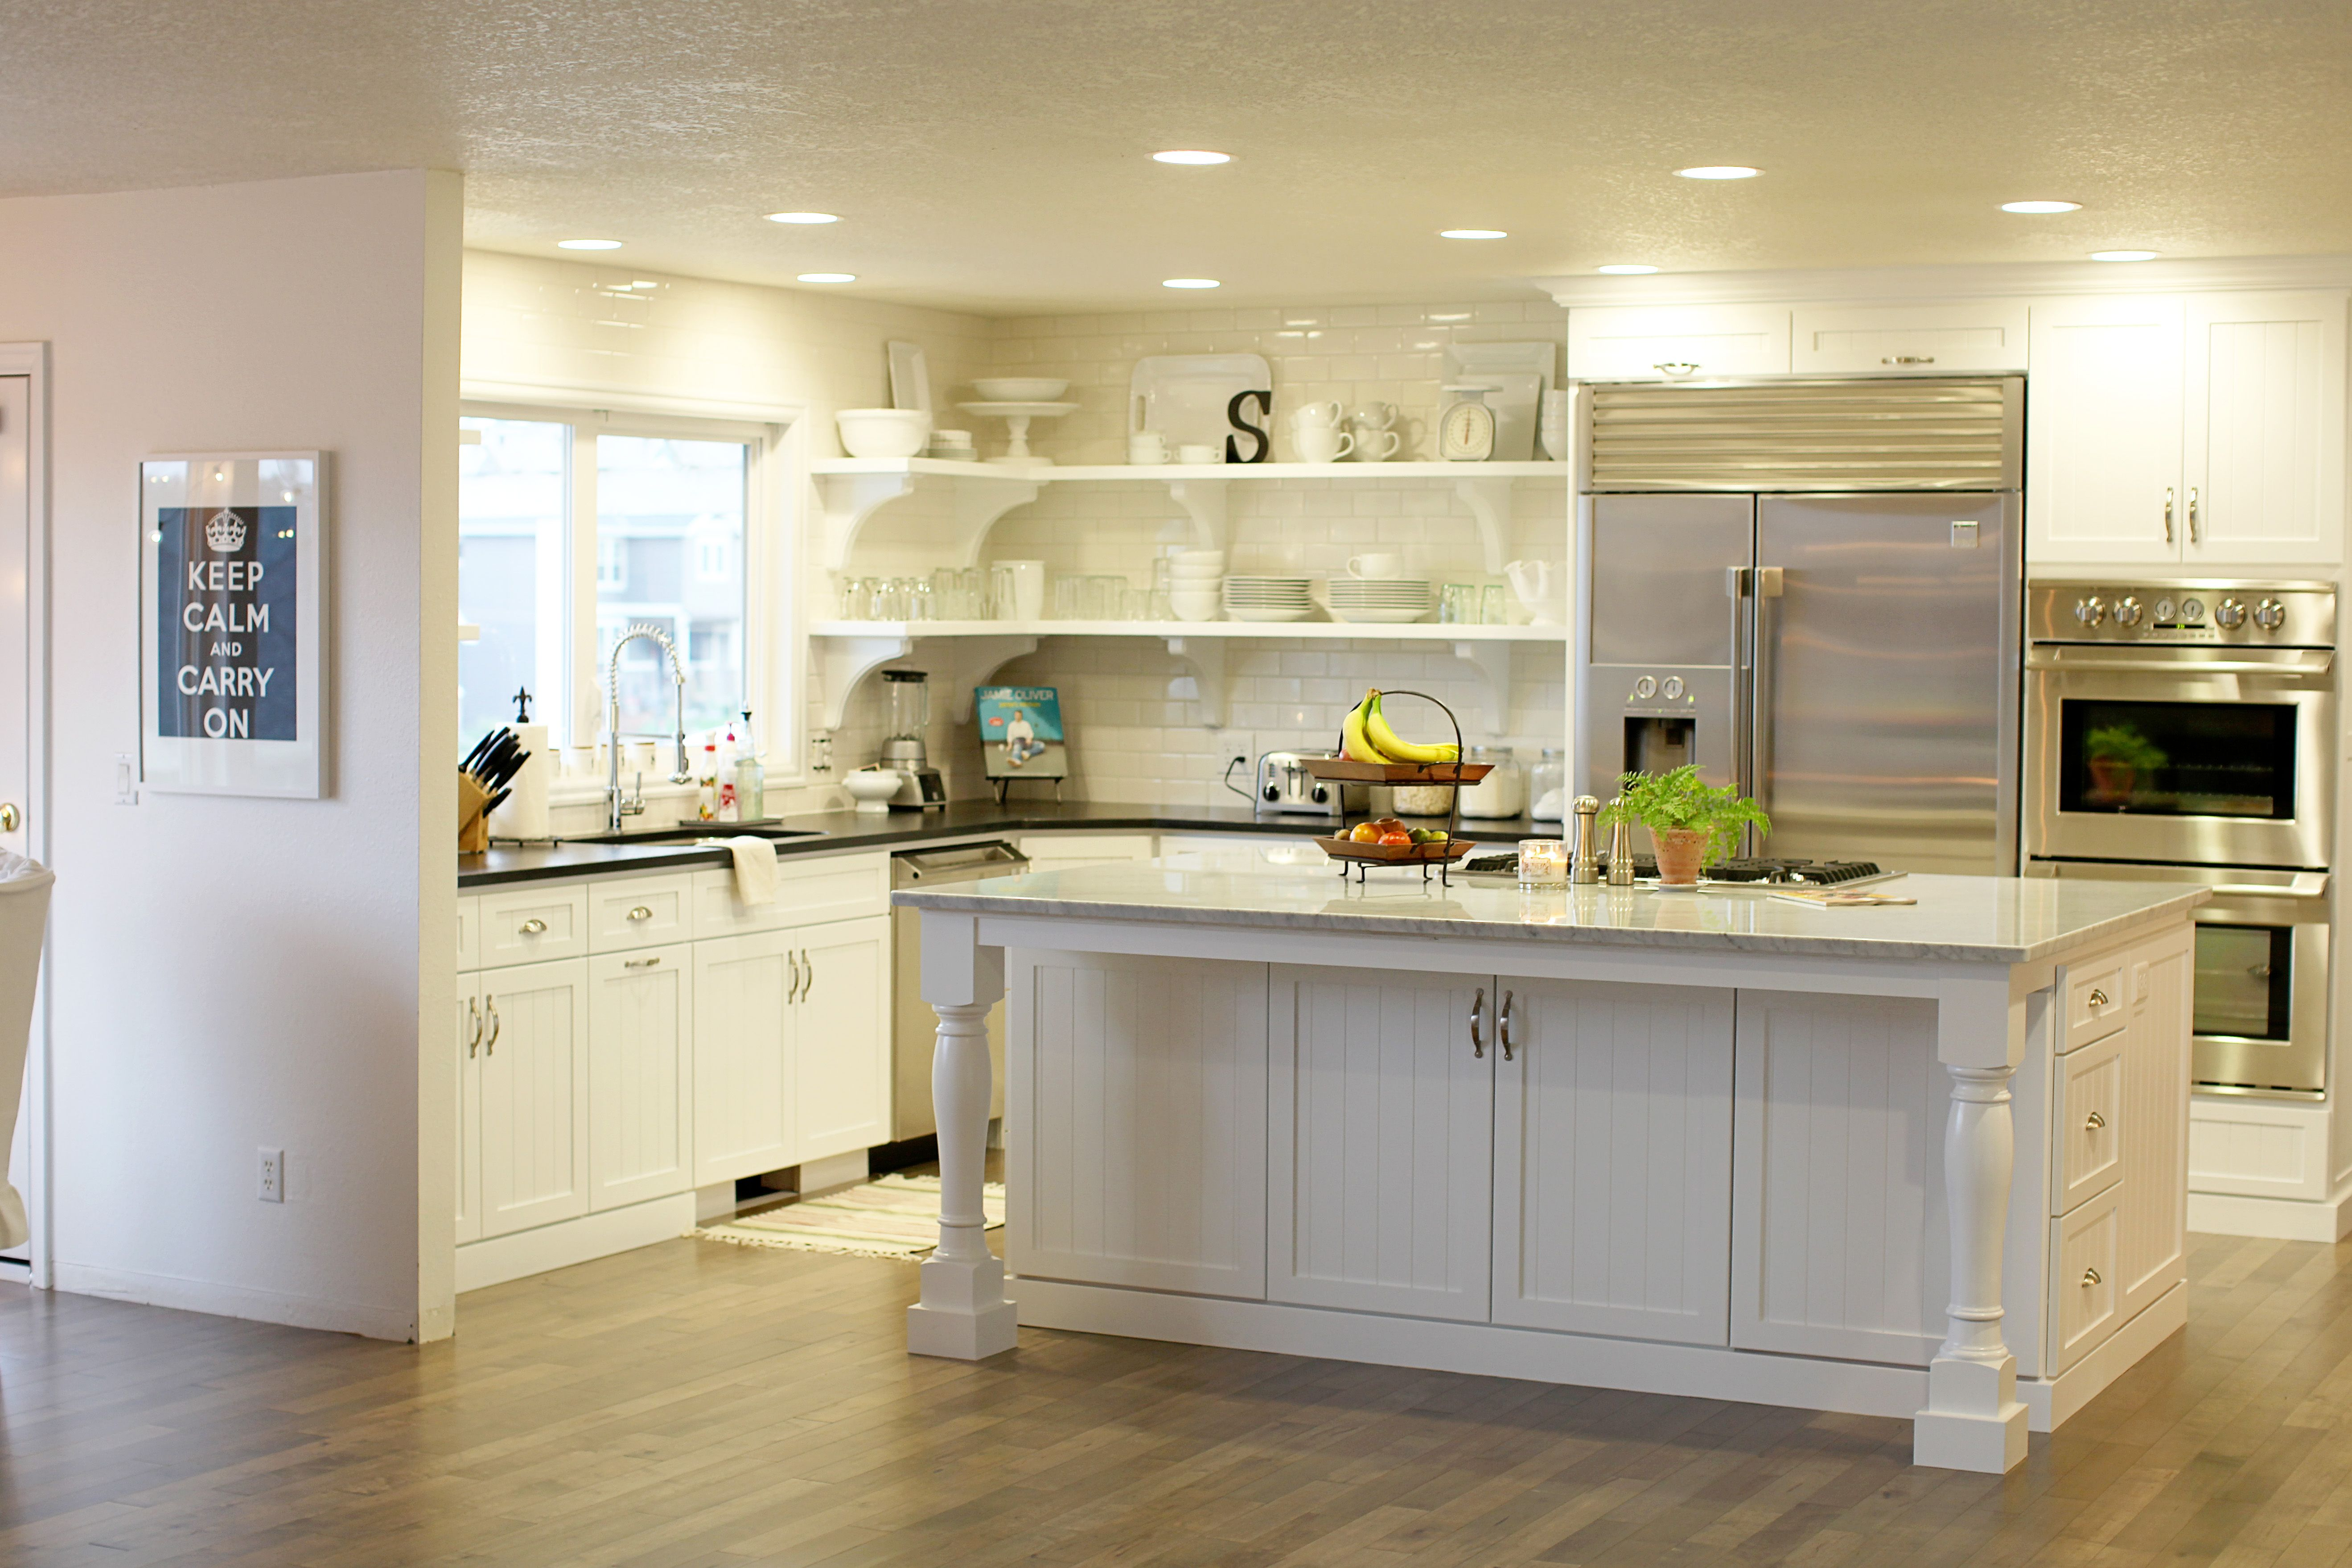 open kitchen cabinets cherry brook with shelves and under island storage options